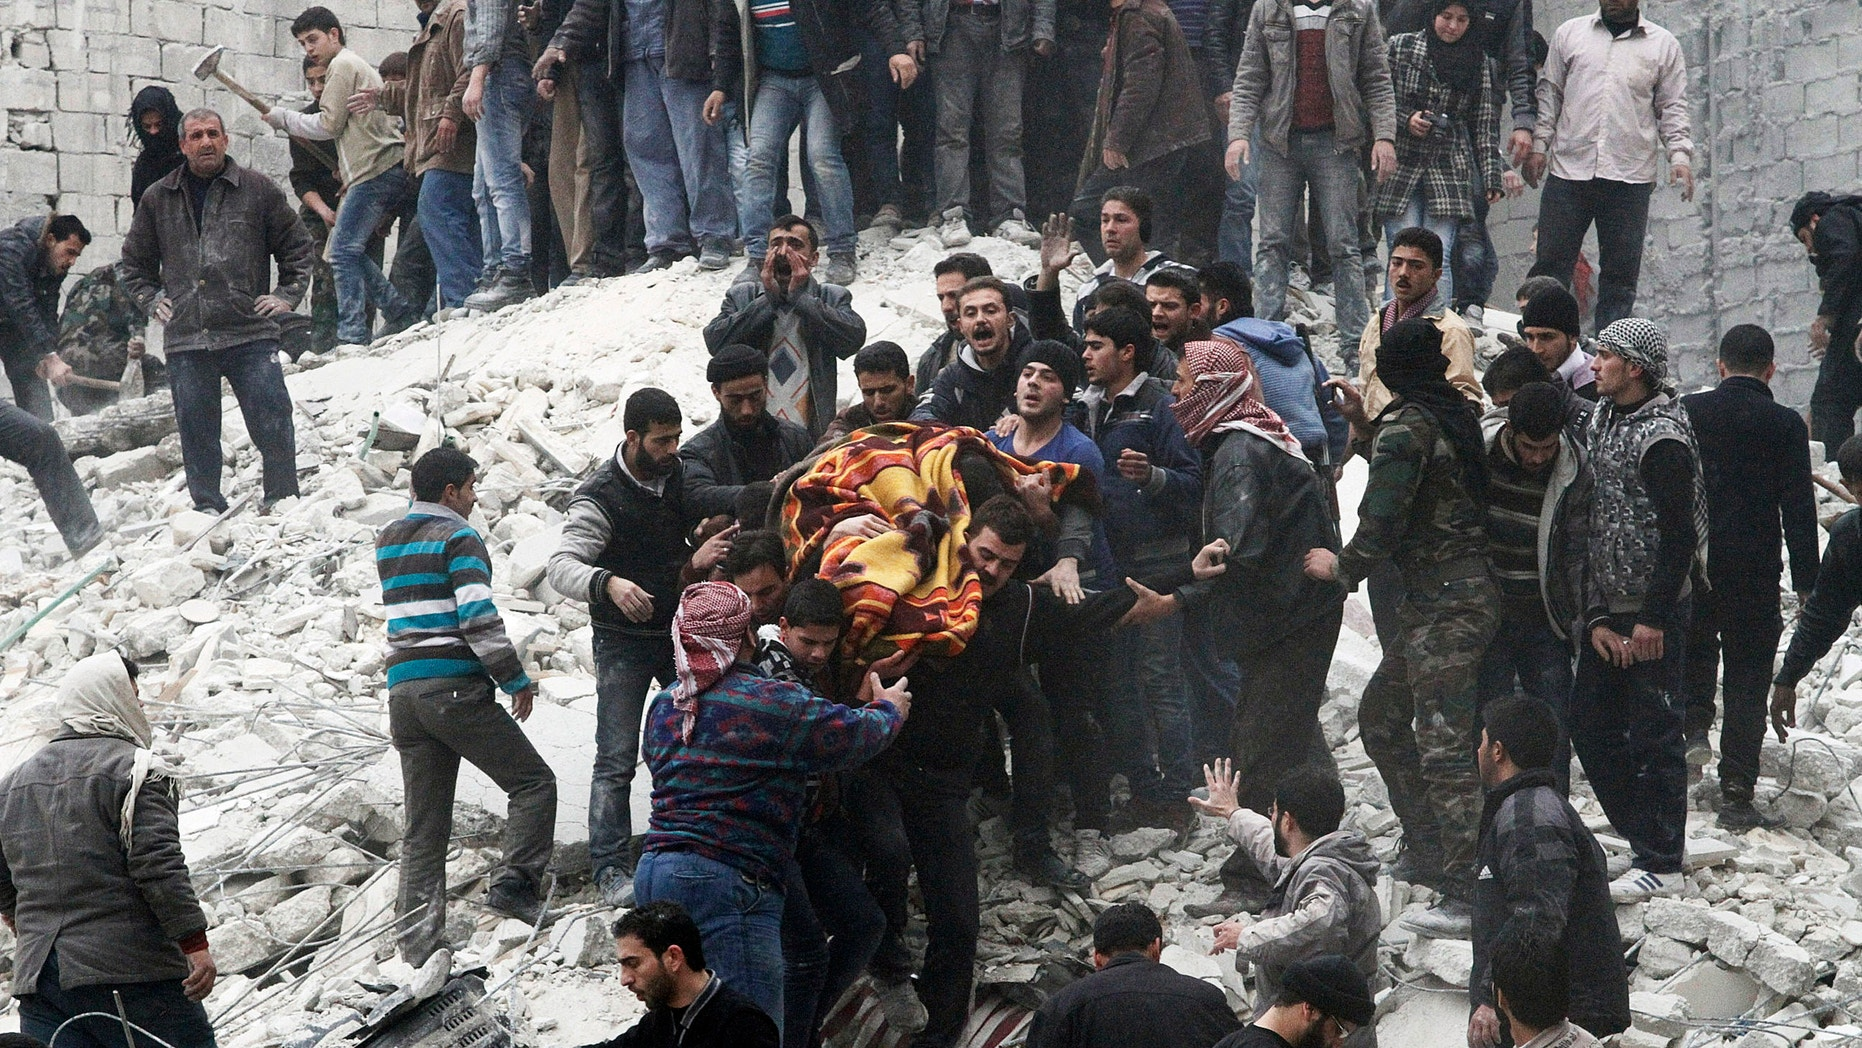 Feb. 3, 2013 - Syrian people carry a body after a government airstrike hit the neighborhood of Ansari, in Aleppo, Syria.